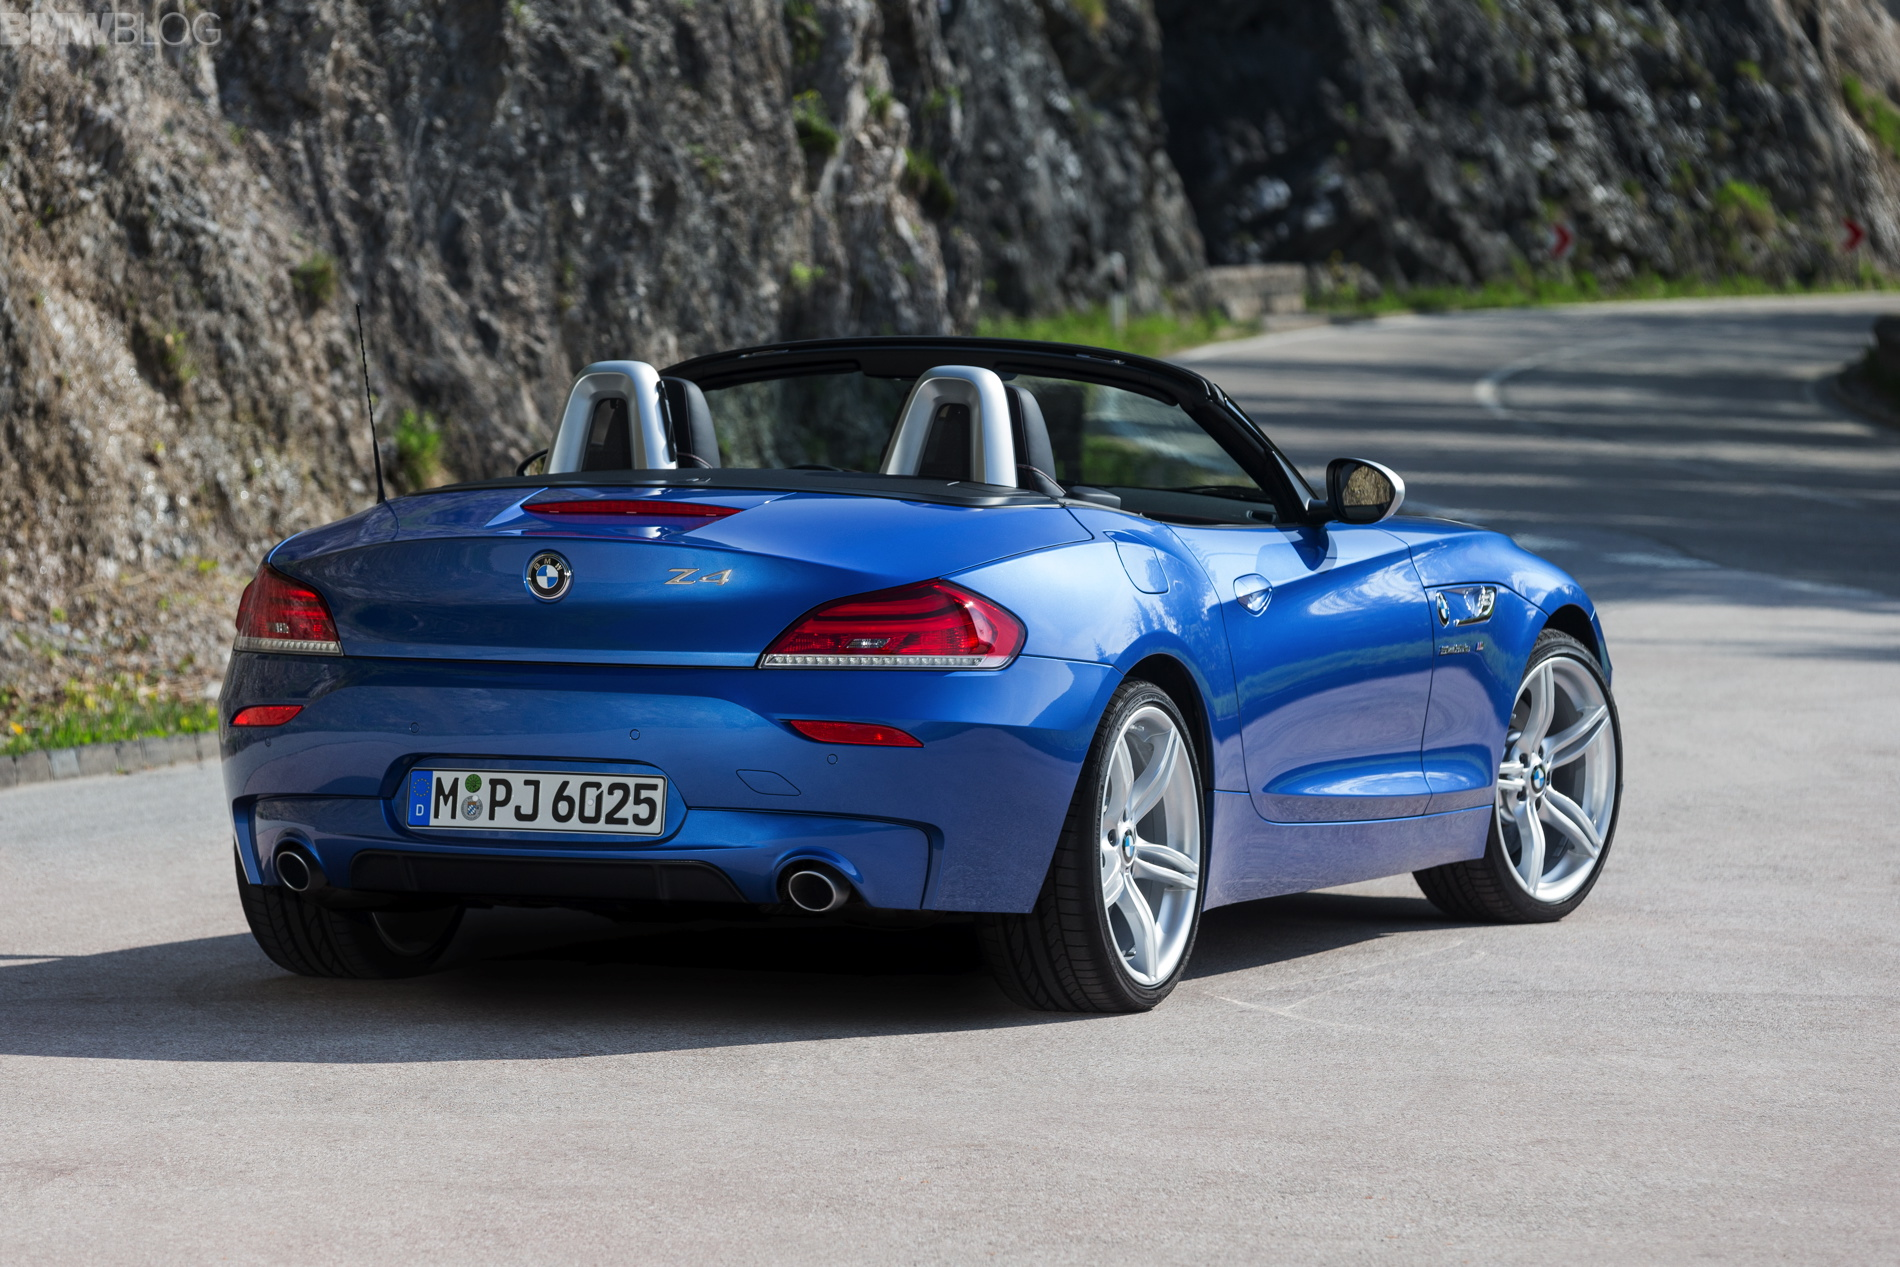 2016 Bmw 328I >> 2015 BMW Z4 looks great in Estoril Blue